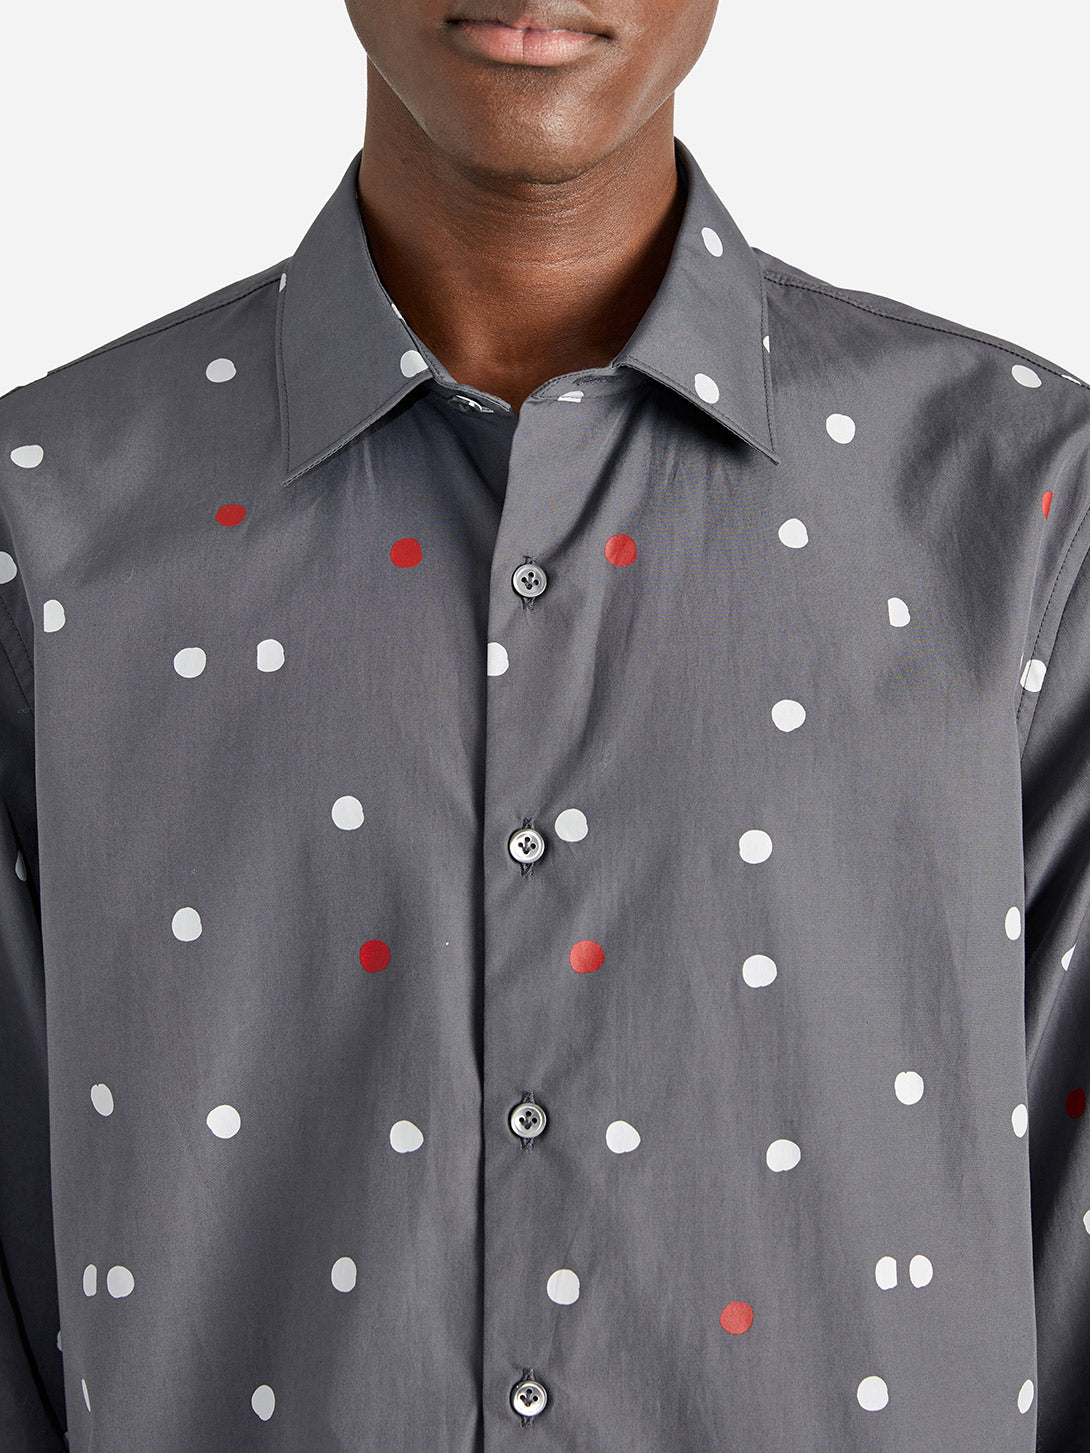 ISSA DRESS SHIRT GREY DOT - ONS Clothing